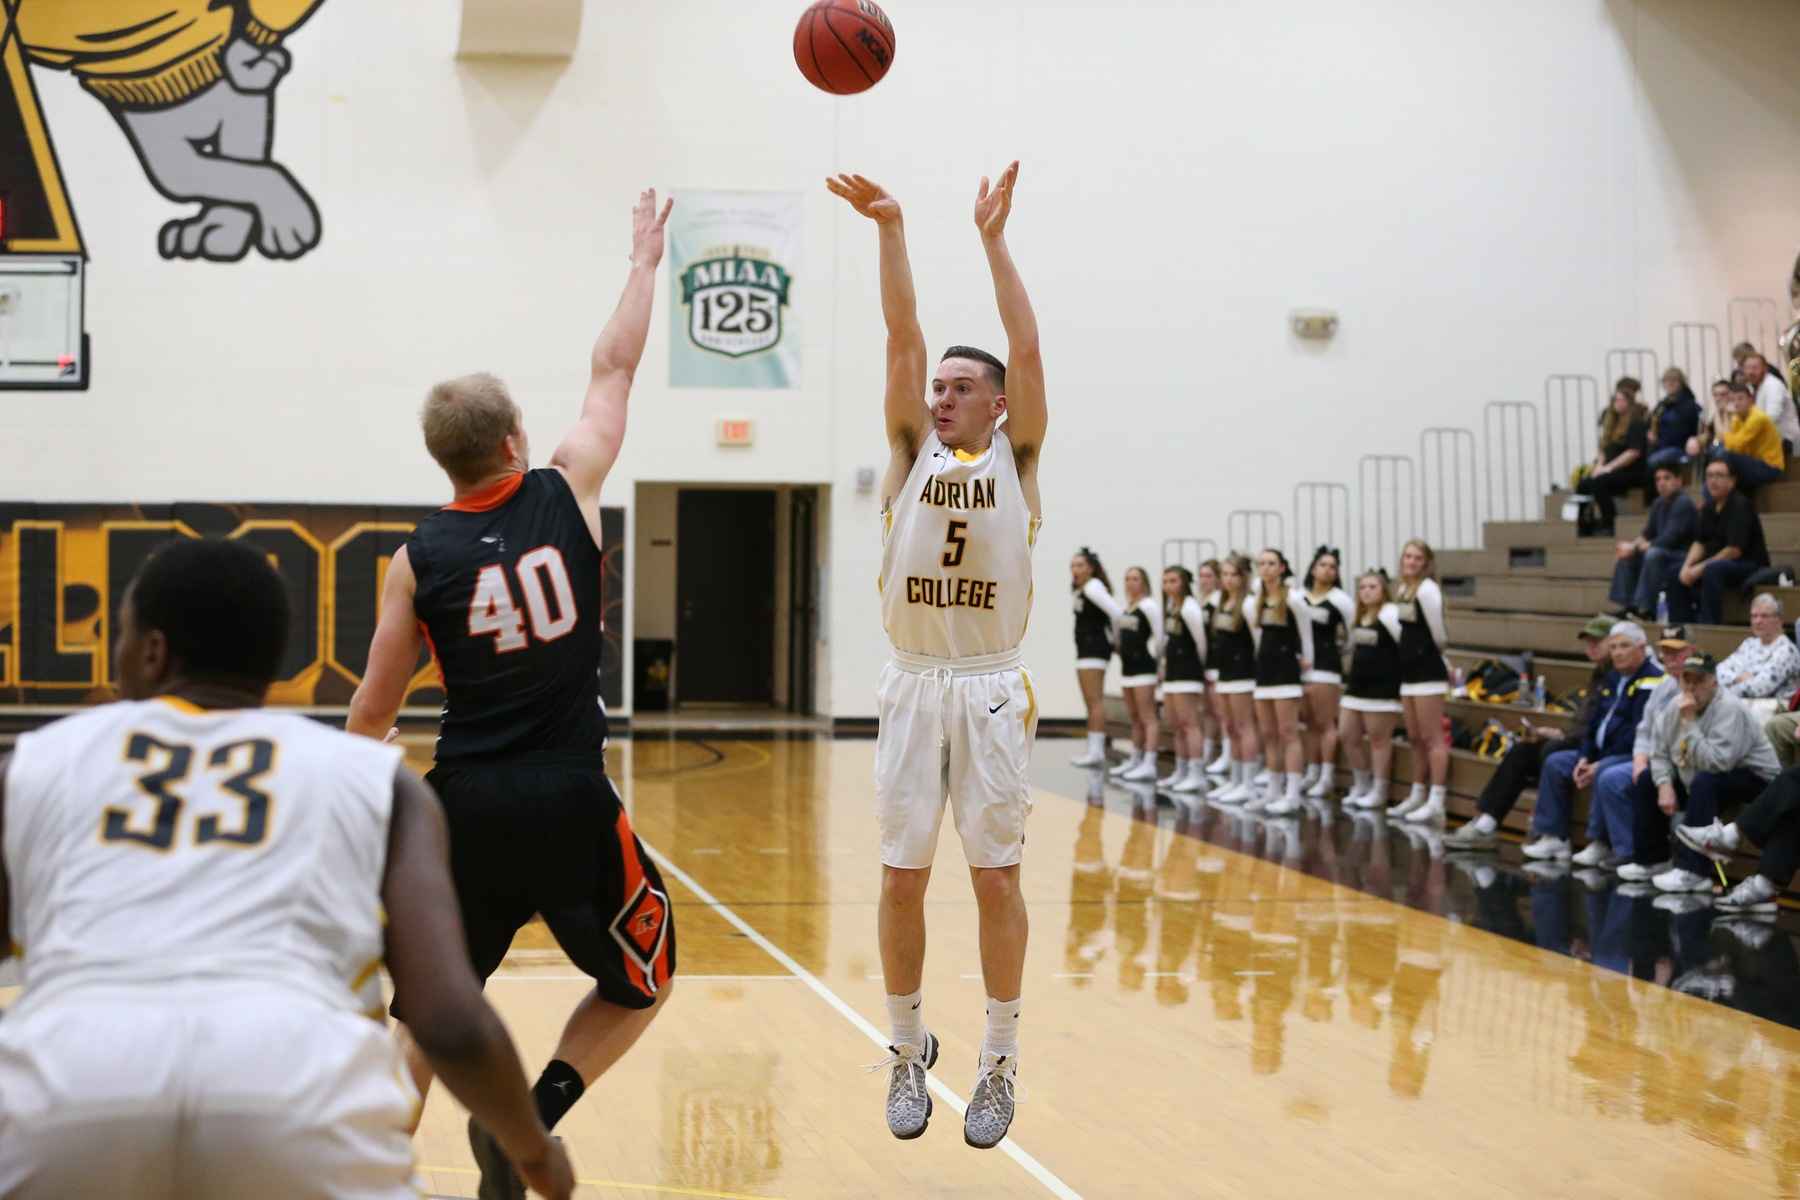 Andrew Landini scored a career-high eight points at home tonight versus Hope. (Photo by Mike Dickie)